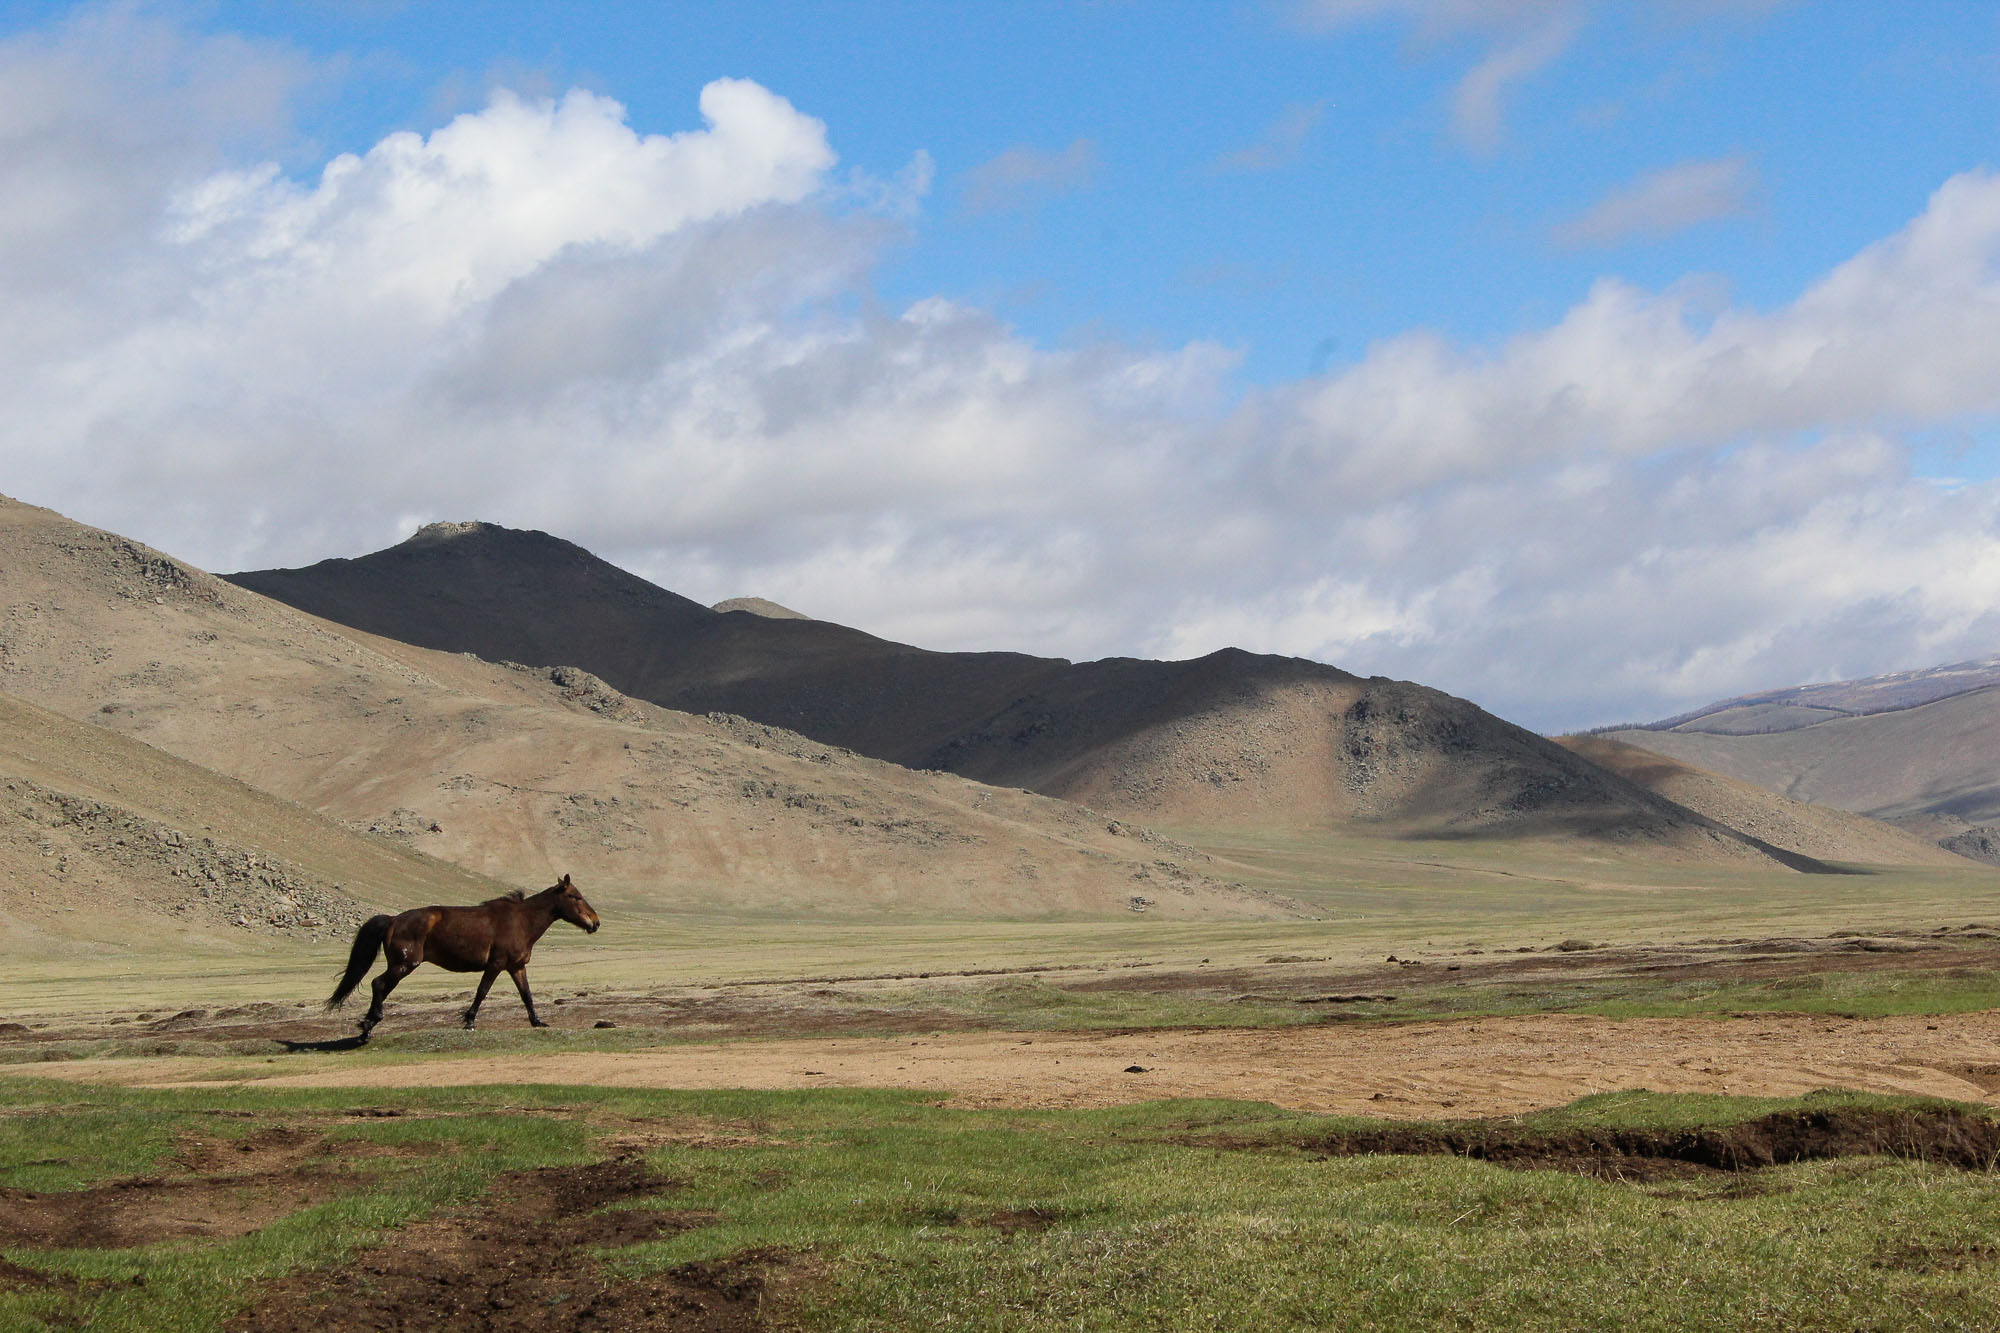 Singing is important in Mongolia. The horsemen sing to praise their horses.